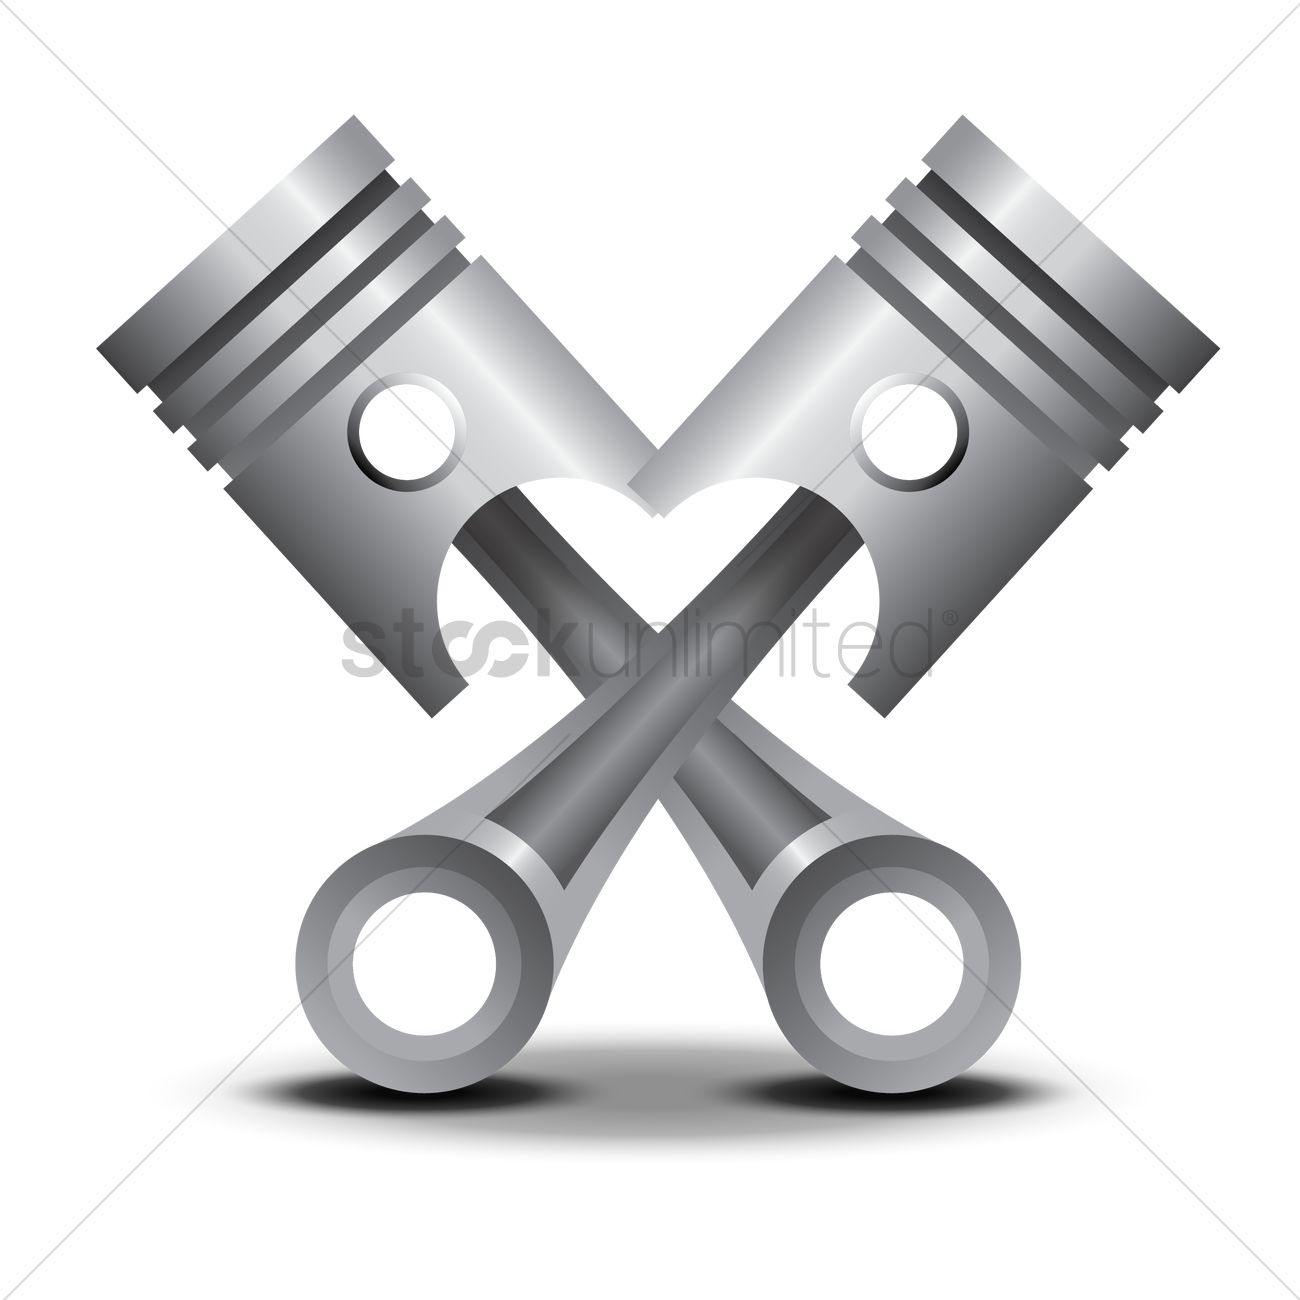 pistons vector image 1432167 stockunlimited